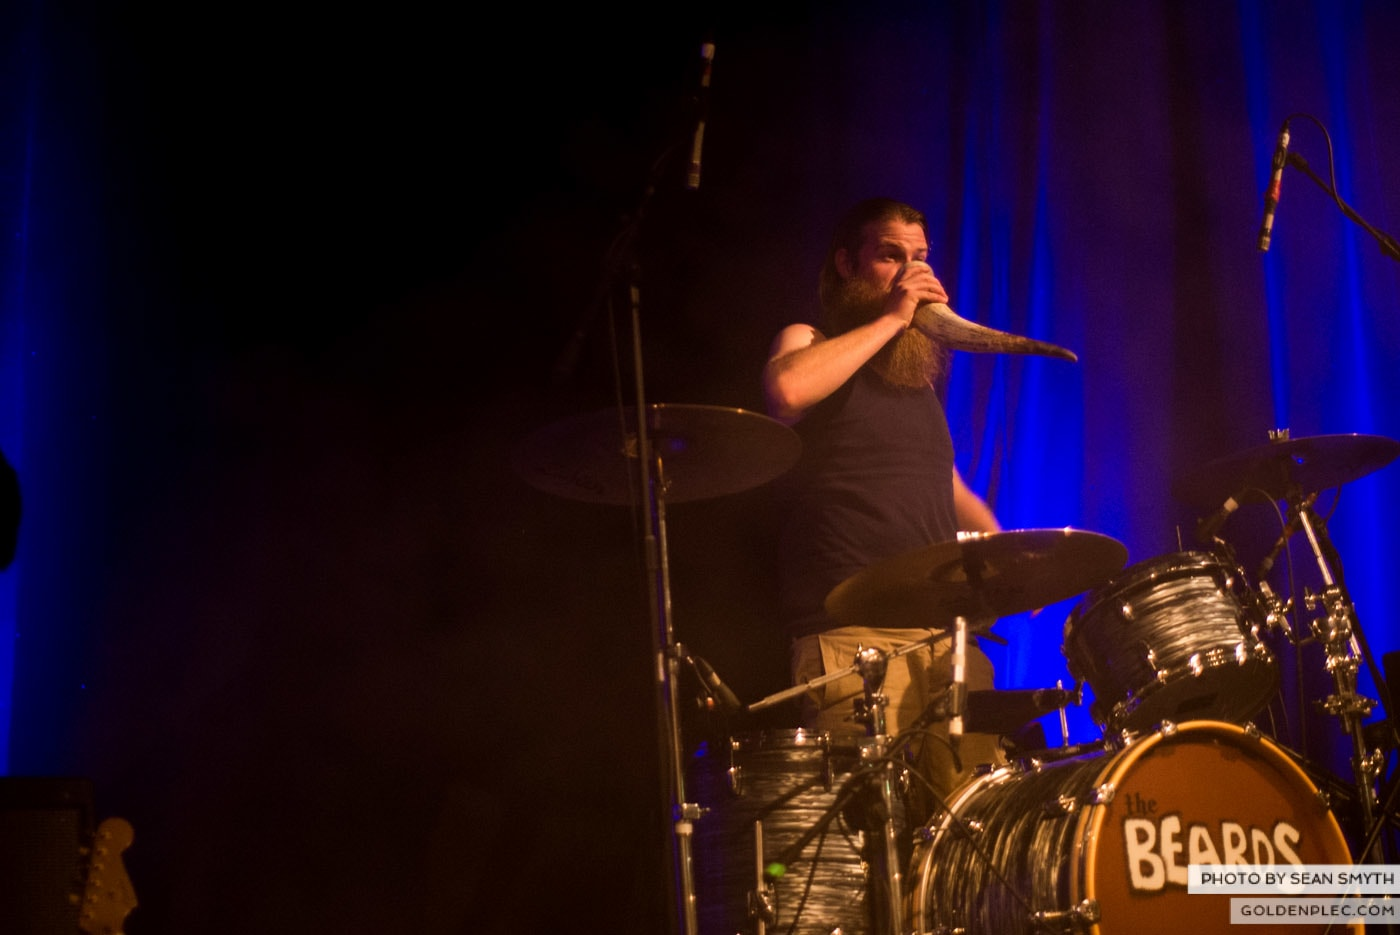 the-beards-at-button-factory-by-sean-smyth-10-12-14-12-of-49